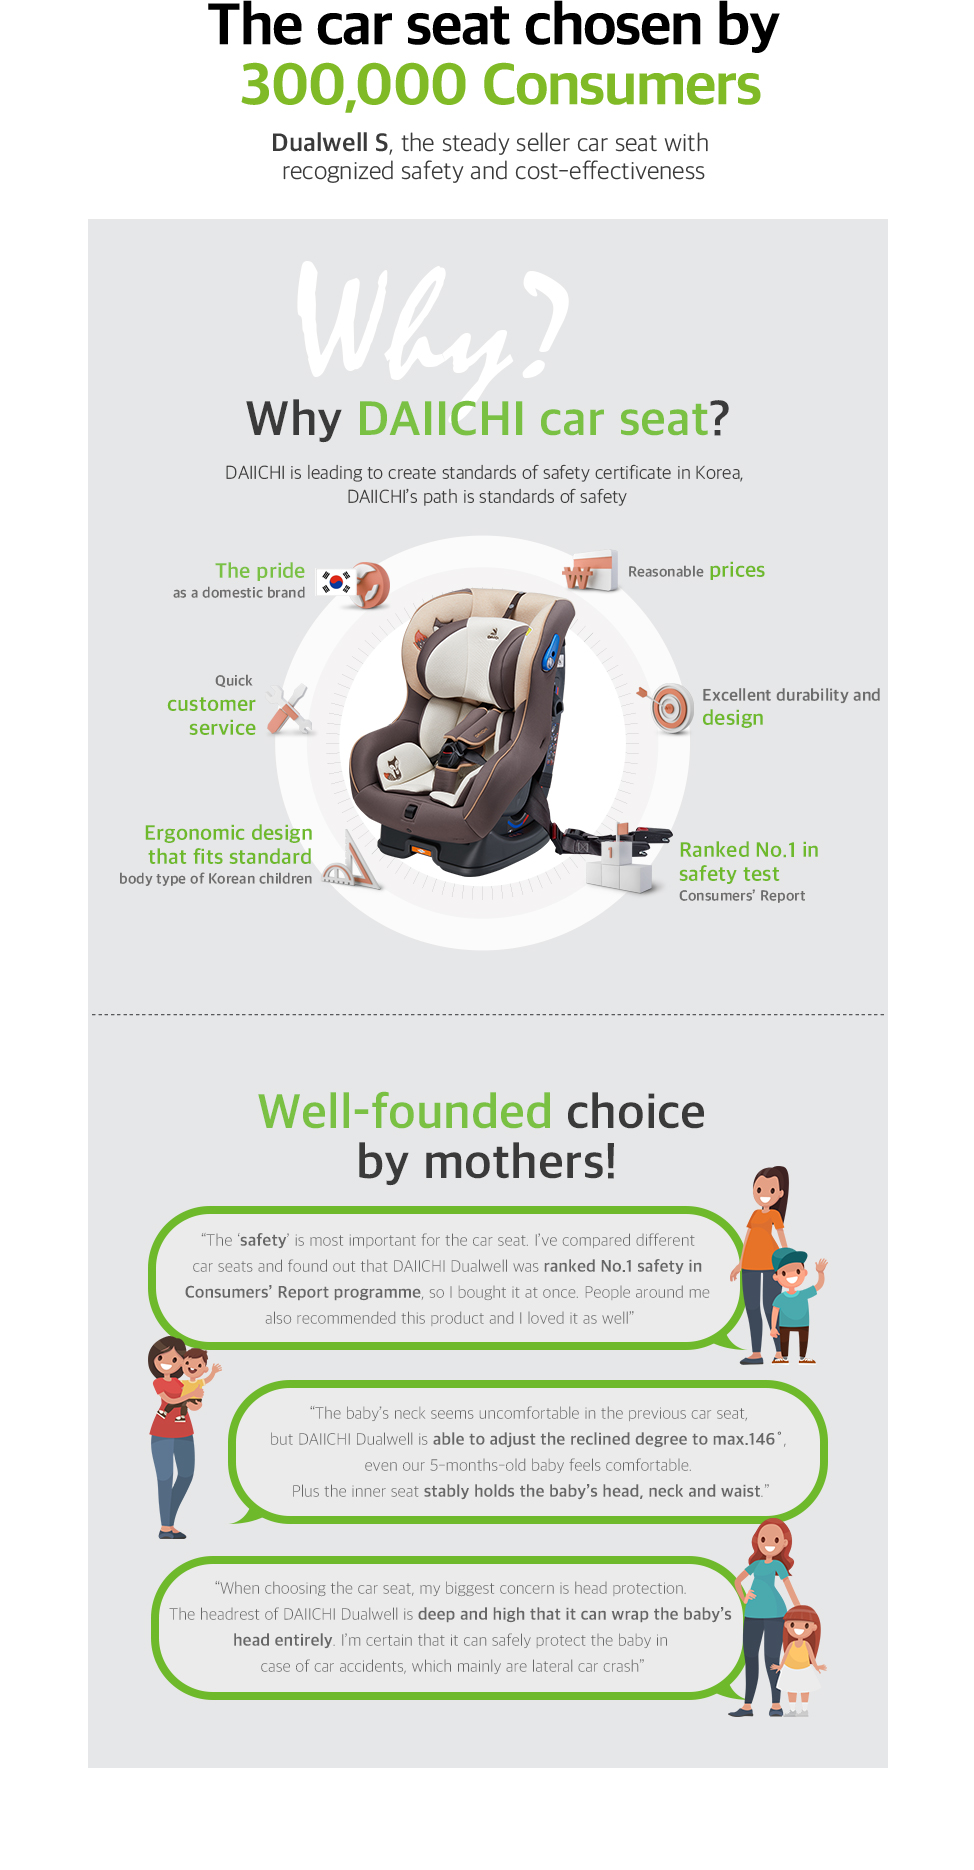 The car seat chosen by 300 thousands. DAIICHI Dualwell S carseat, the steady seller car seat with recognized safety and cost-effectiveness.